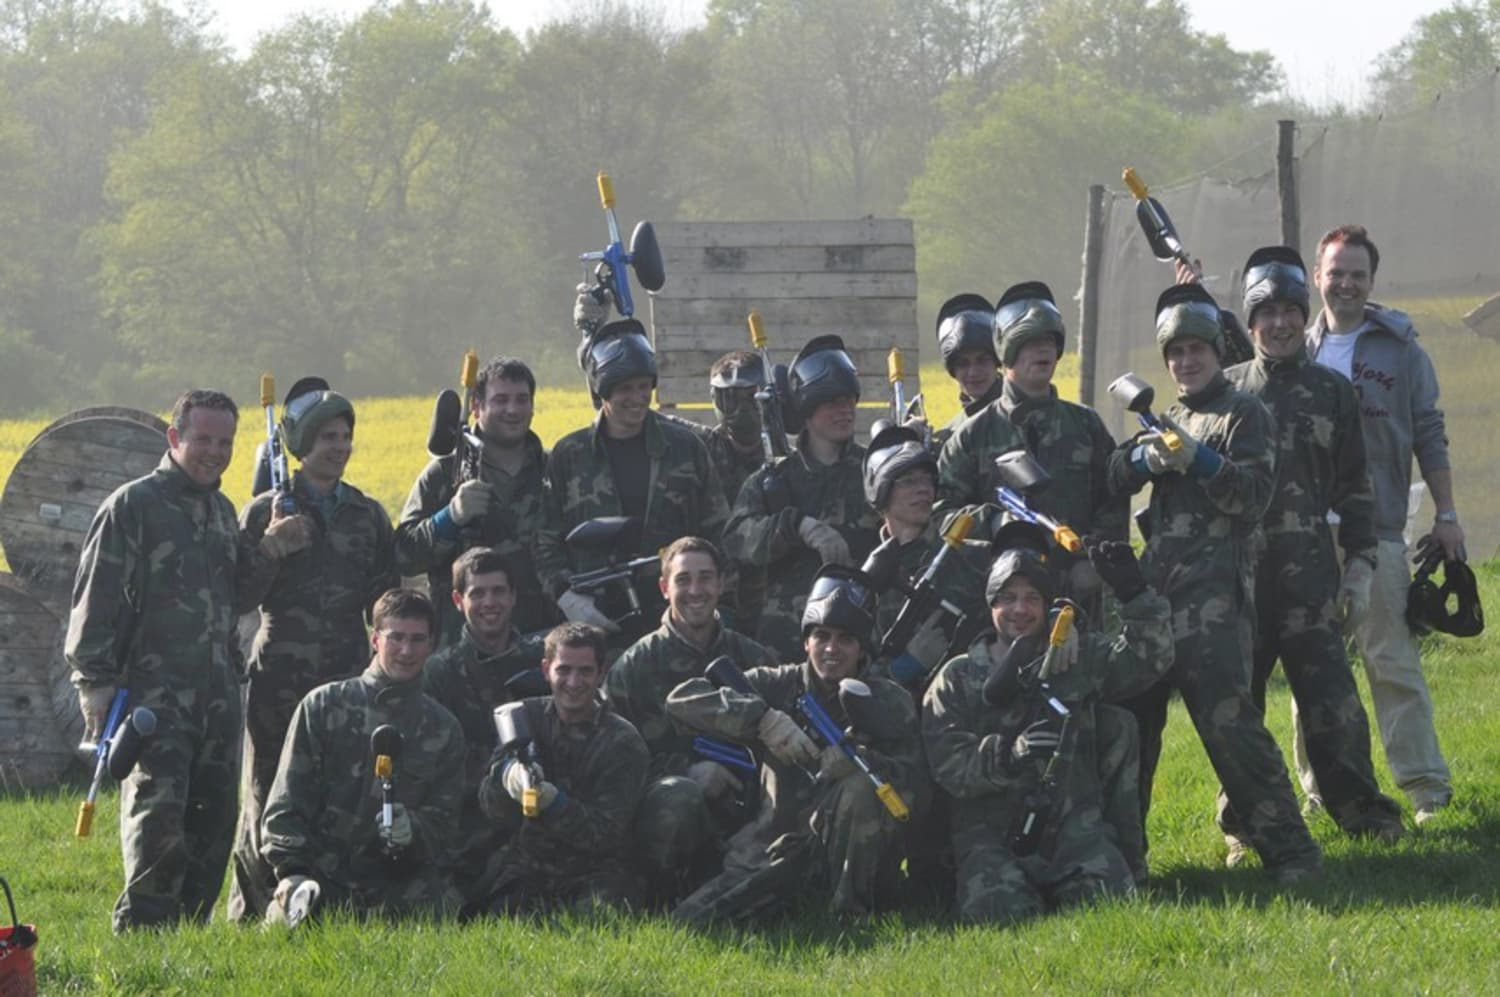 Perche Paintball Saint-Germain-De-La-Coudre - Saint-Germain-De-La-Coudre